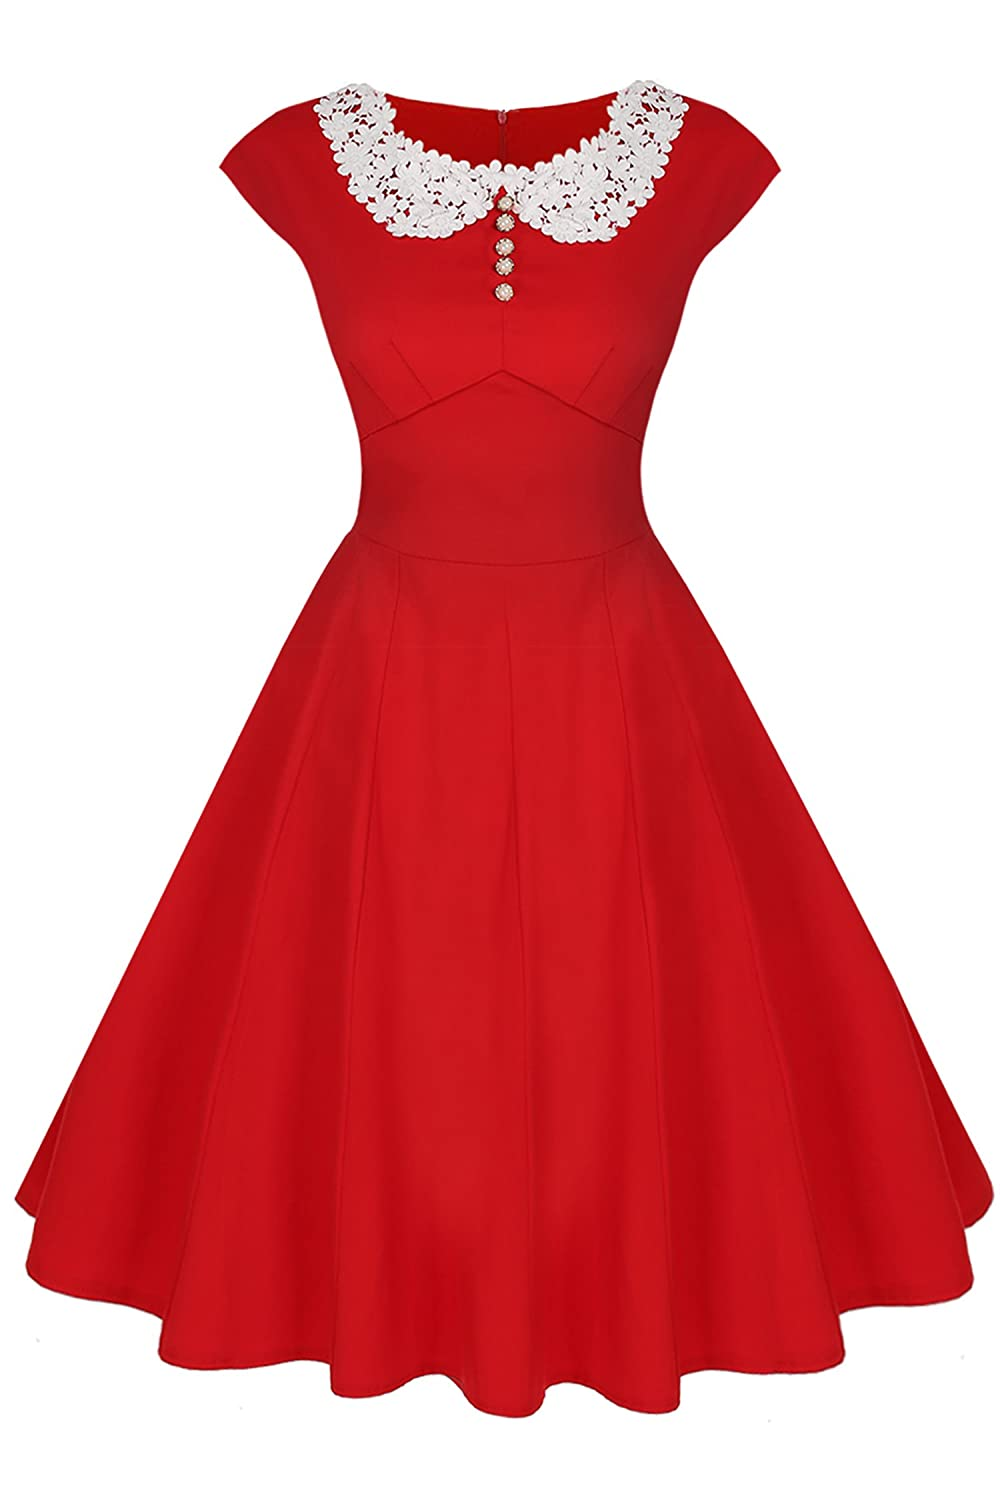 Agent Peggy Carter Costume, Dress, Hats ACEVOG Womens Classy Vintage Audrey Hepburn Style 1940s Rockabilly Evening Dress $19.99 AT vintagedancer.com